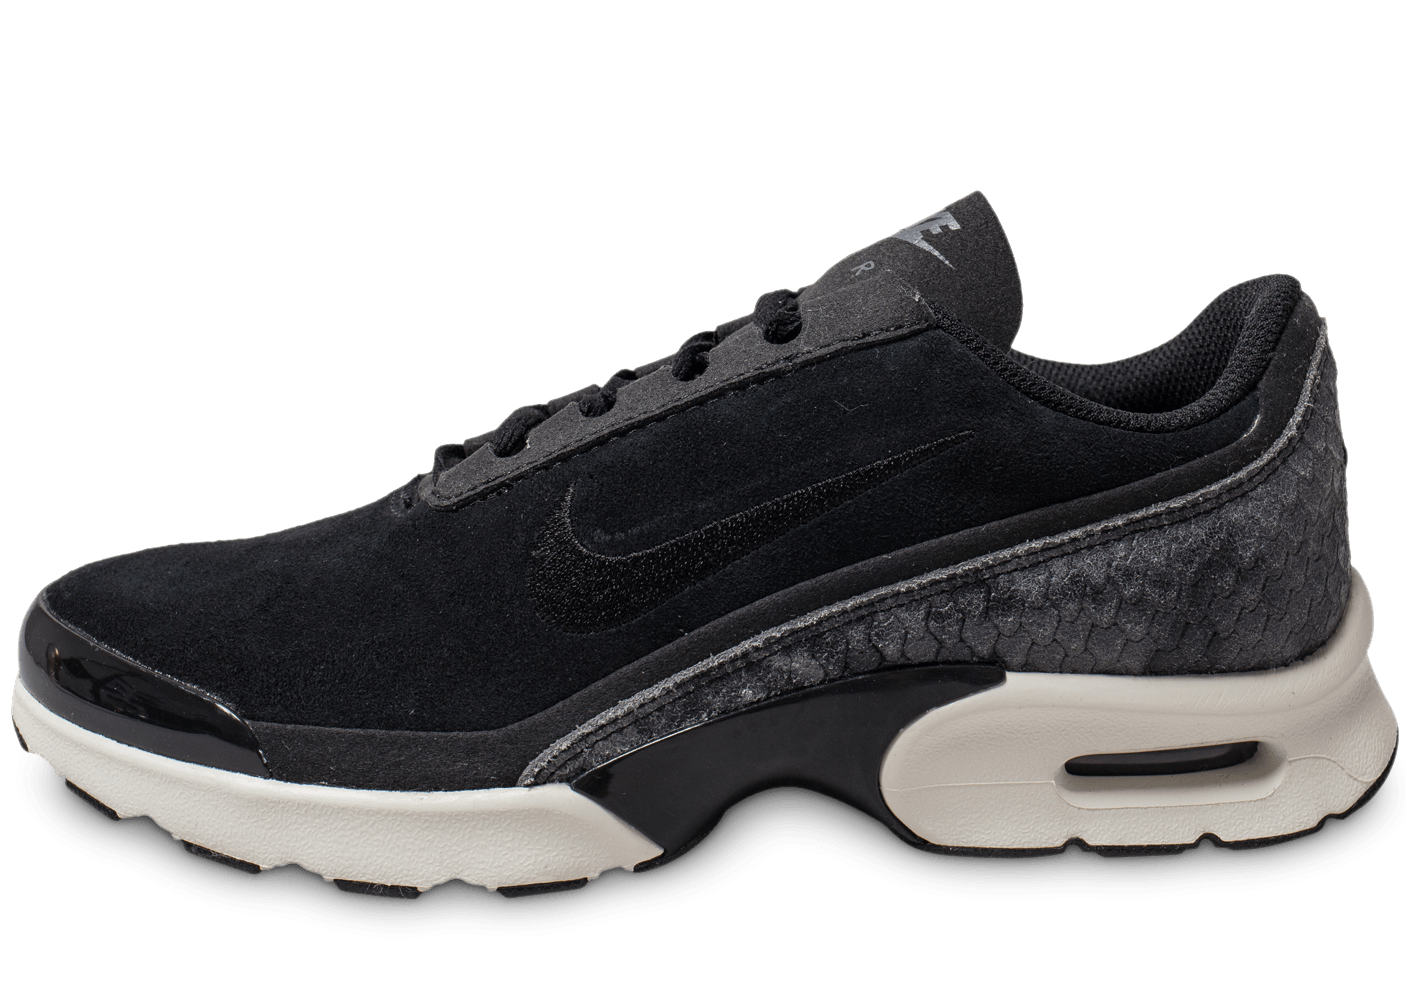 nike air max jewell noire chaussures black friday chausport. Black Bedroom Furniture Sets. Home Design Ideas